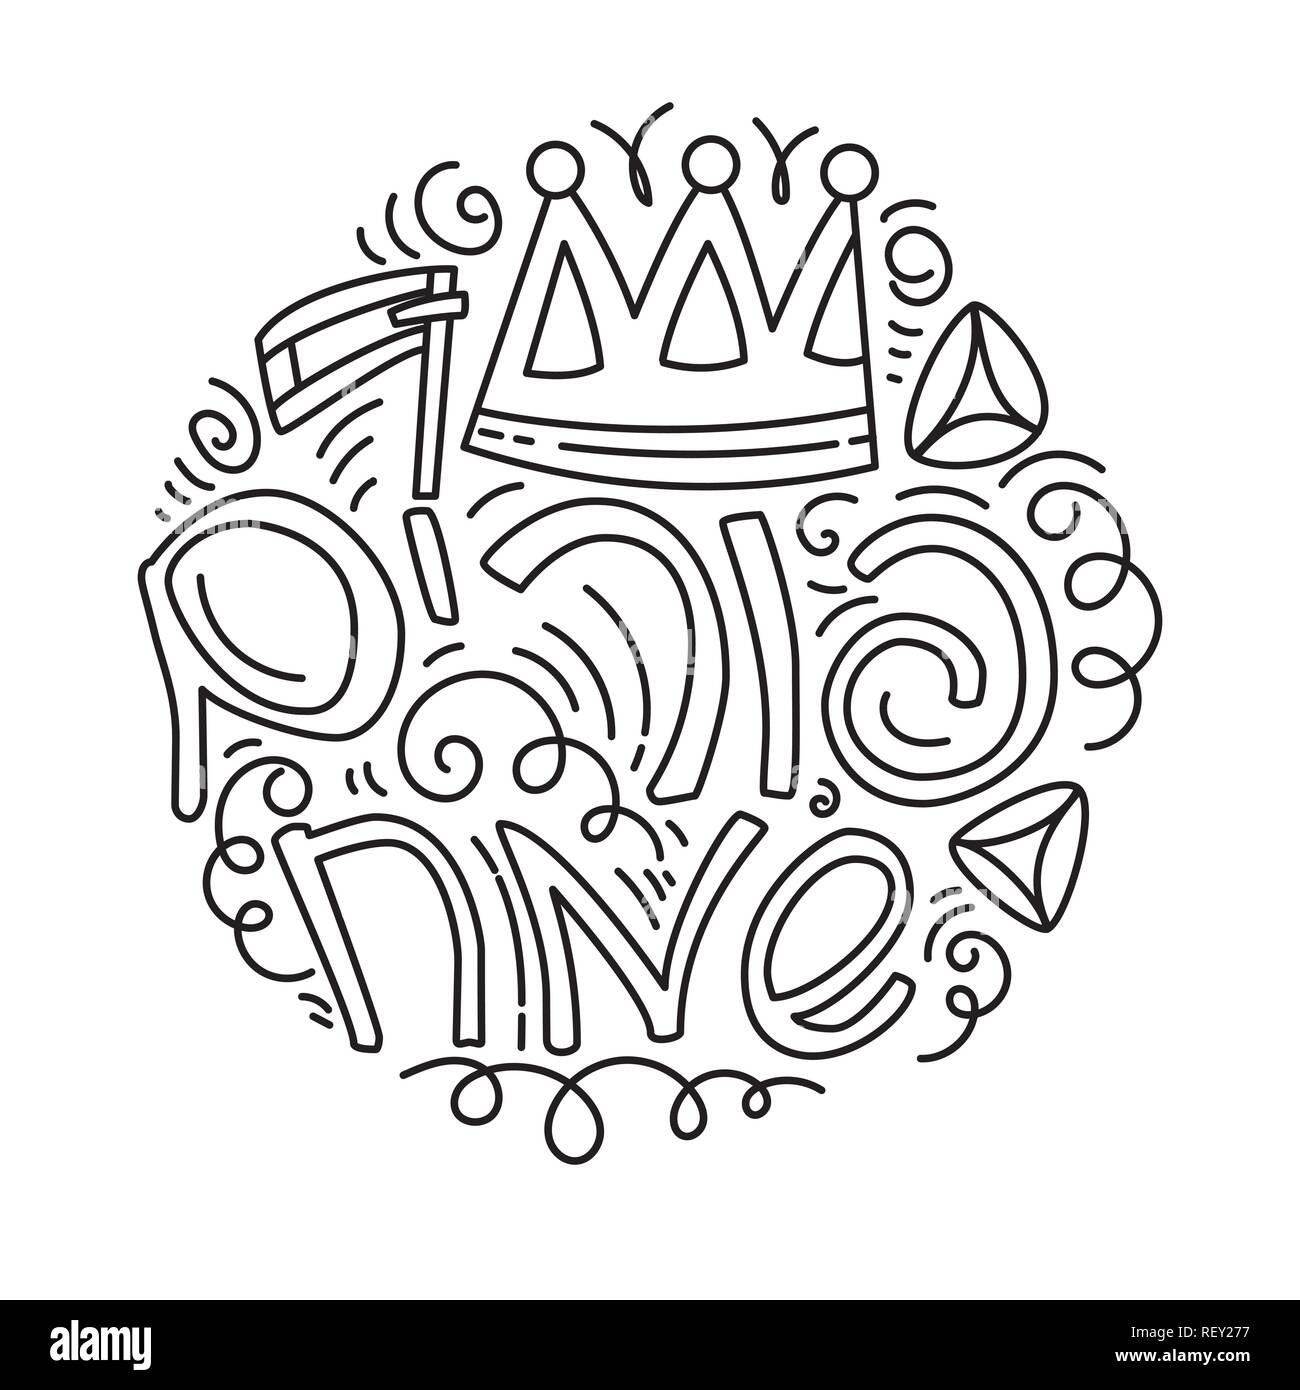 Purim greeting card and coloring page in doodle style with crown, noise make, hamantaschen and Hebrew text Happy Purim. Black and white vector illustration. - Stock Image